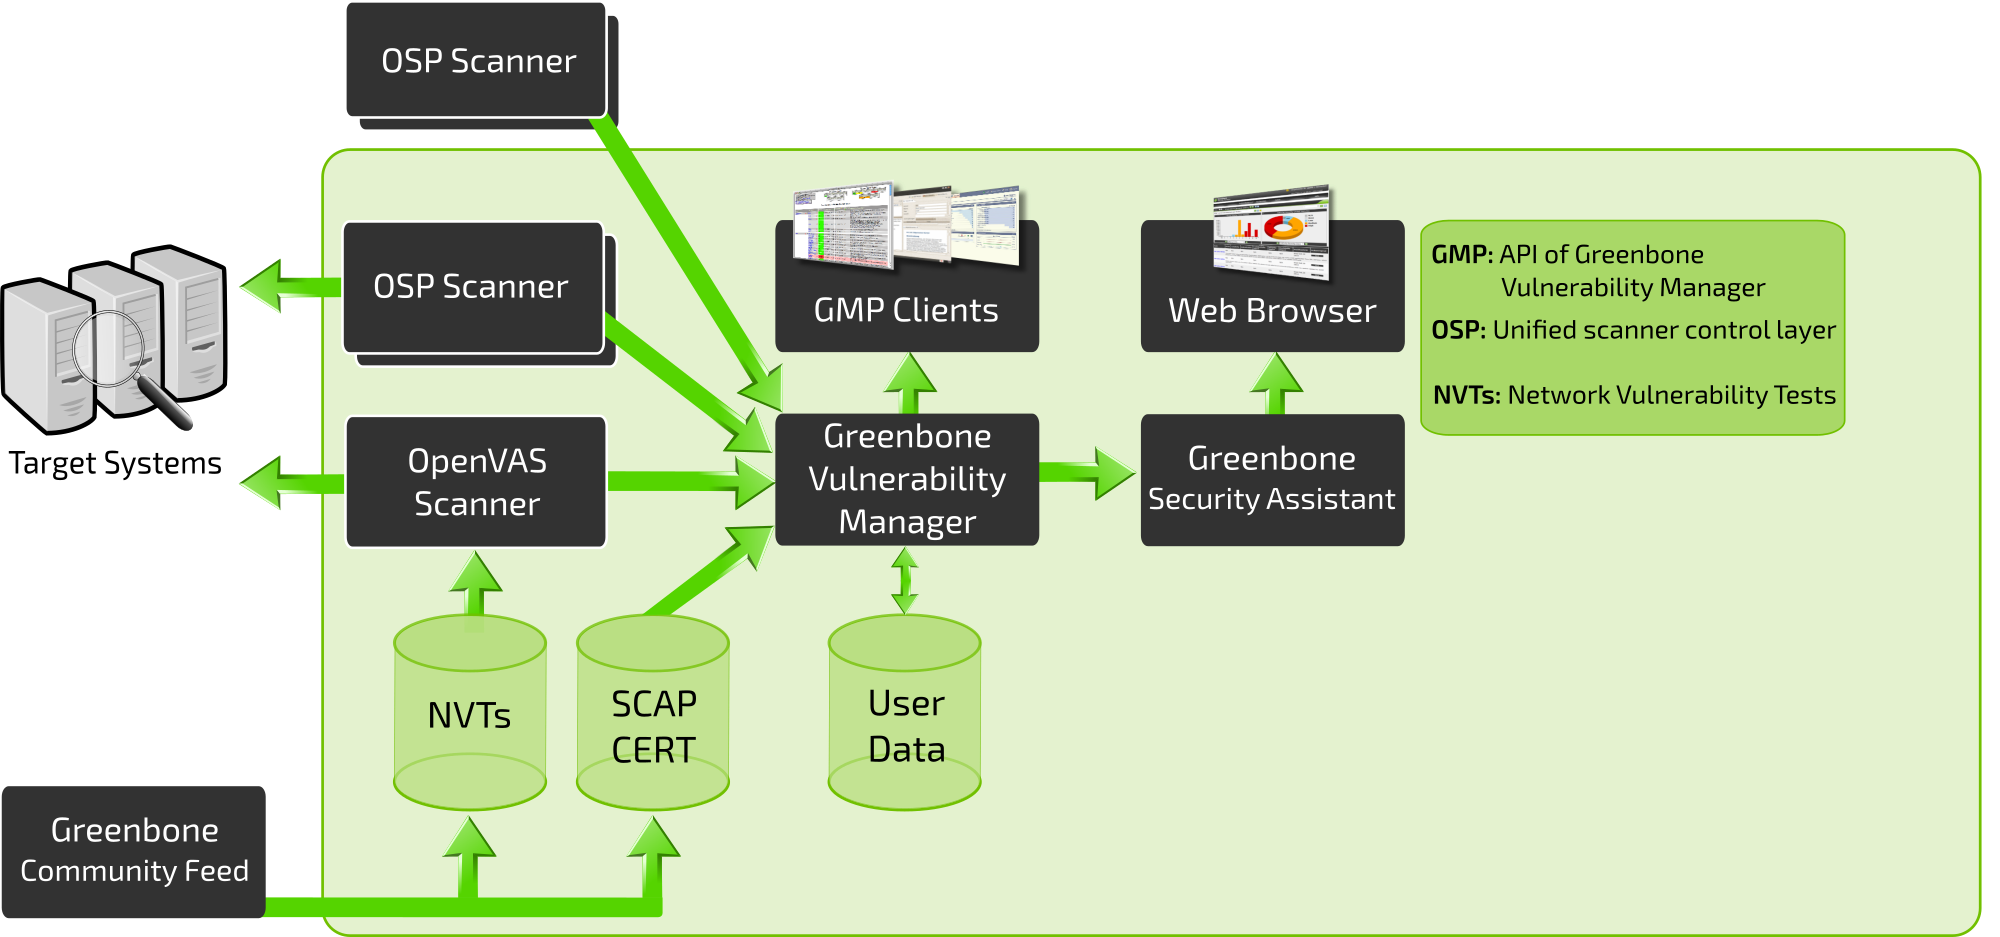 About GVM Architecture - Greenbone Source Edition (GSE